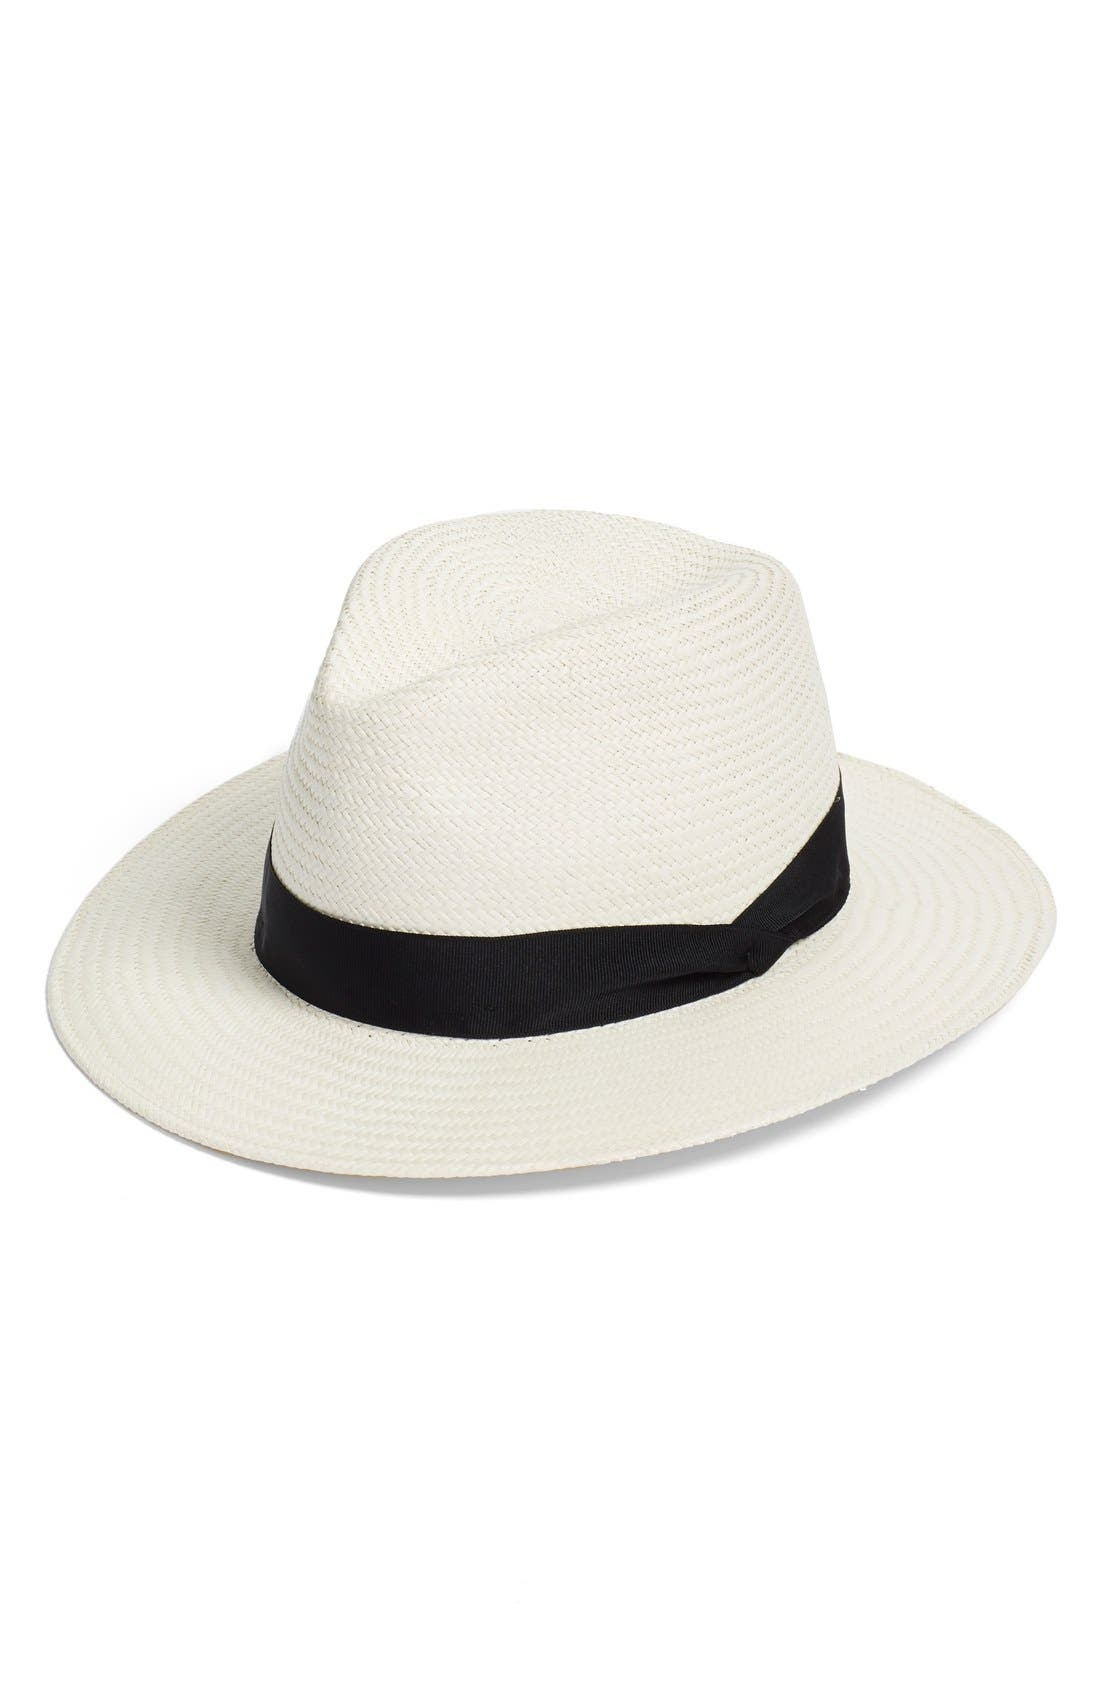 Straw Panama Hat,                         Main,                         color, WHITE